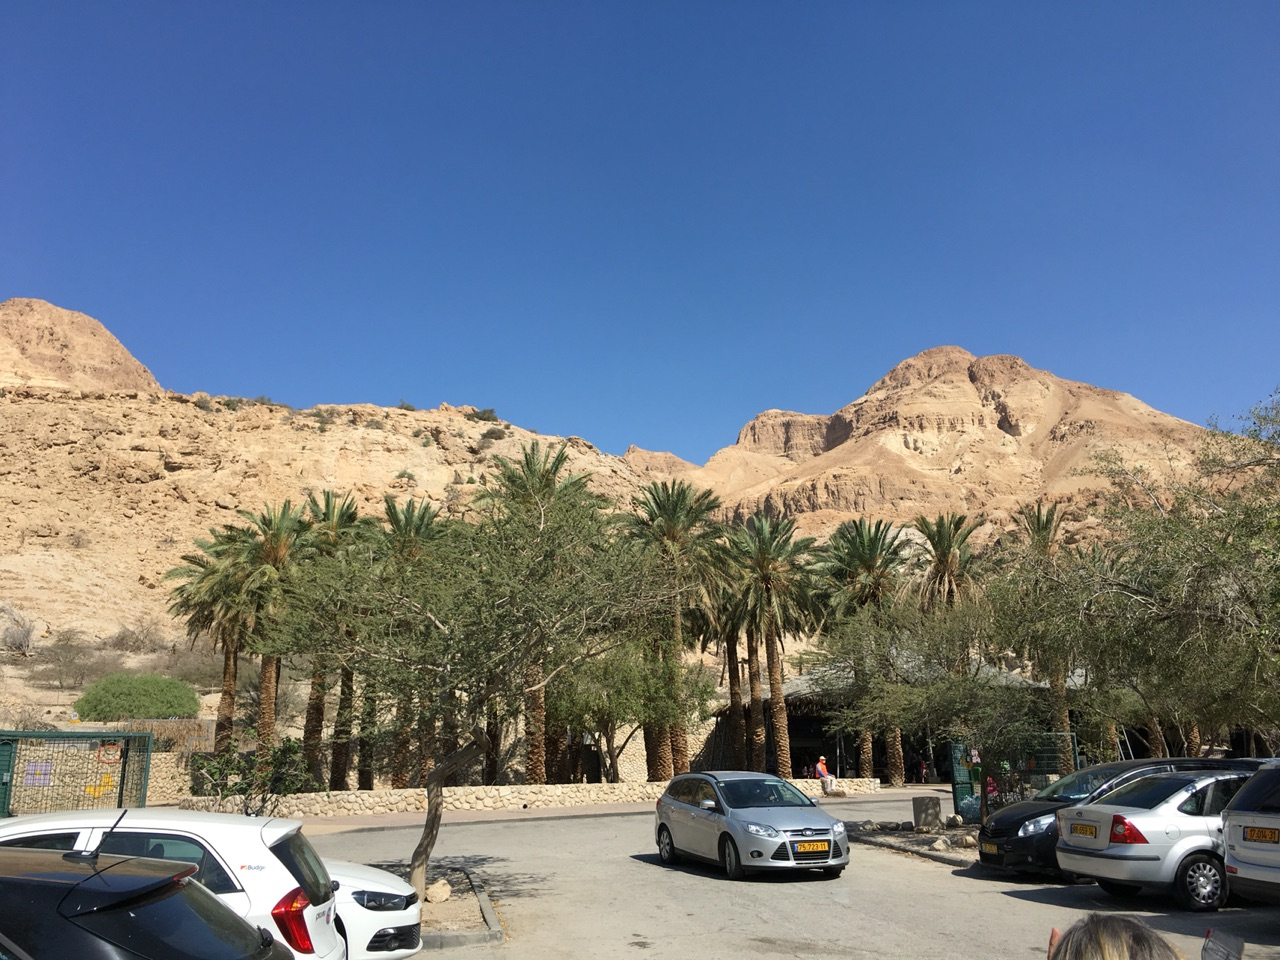 Visiting the parking lot of Ein Gedi Reserve